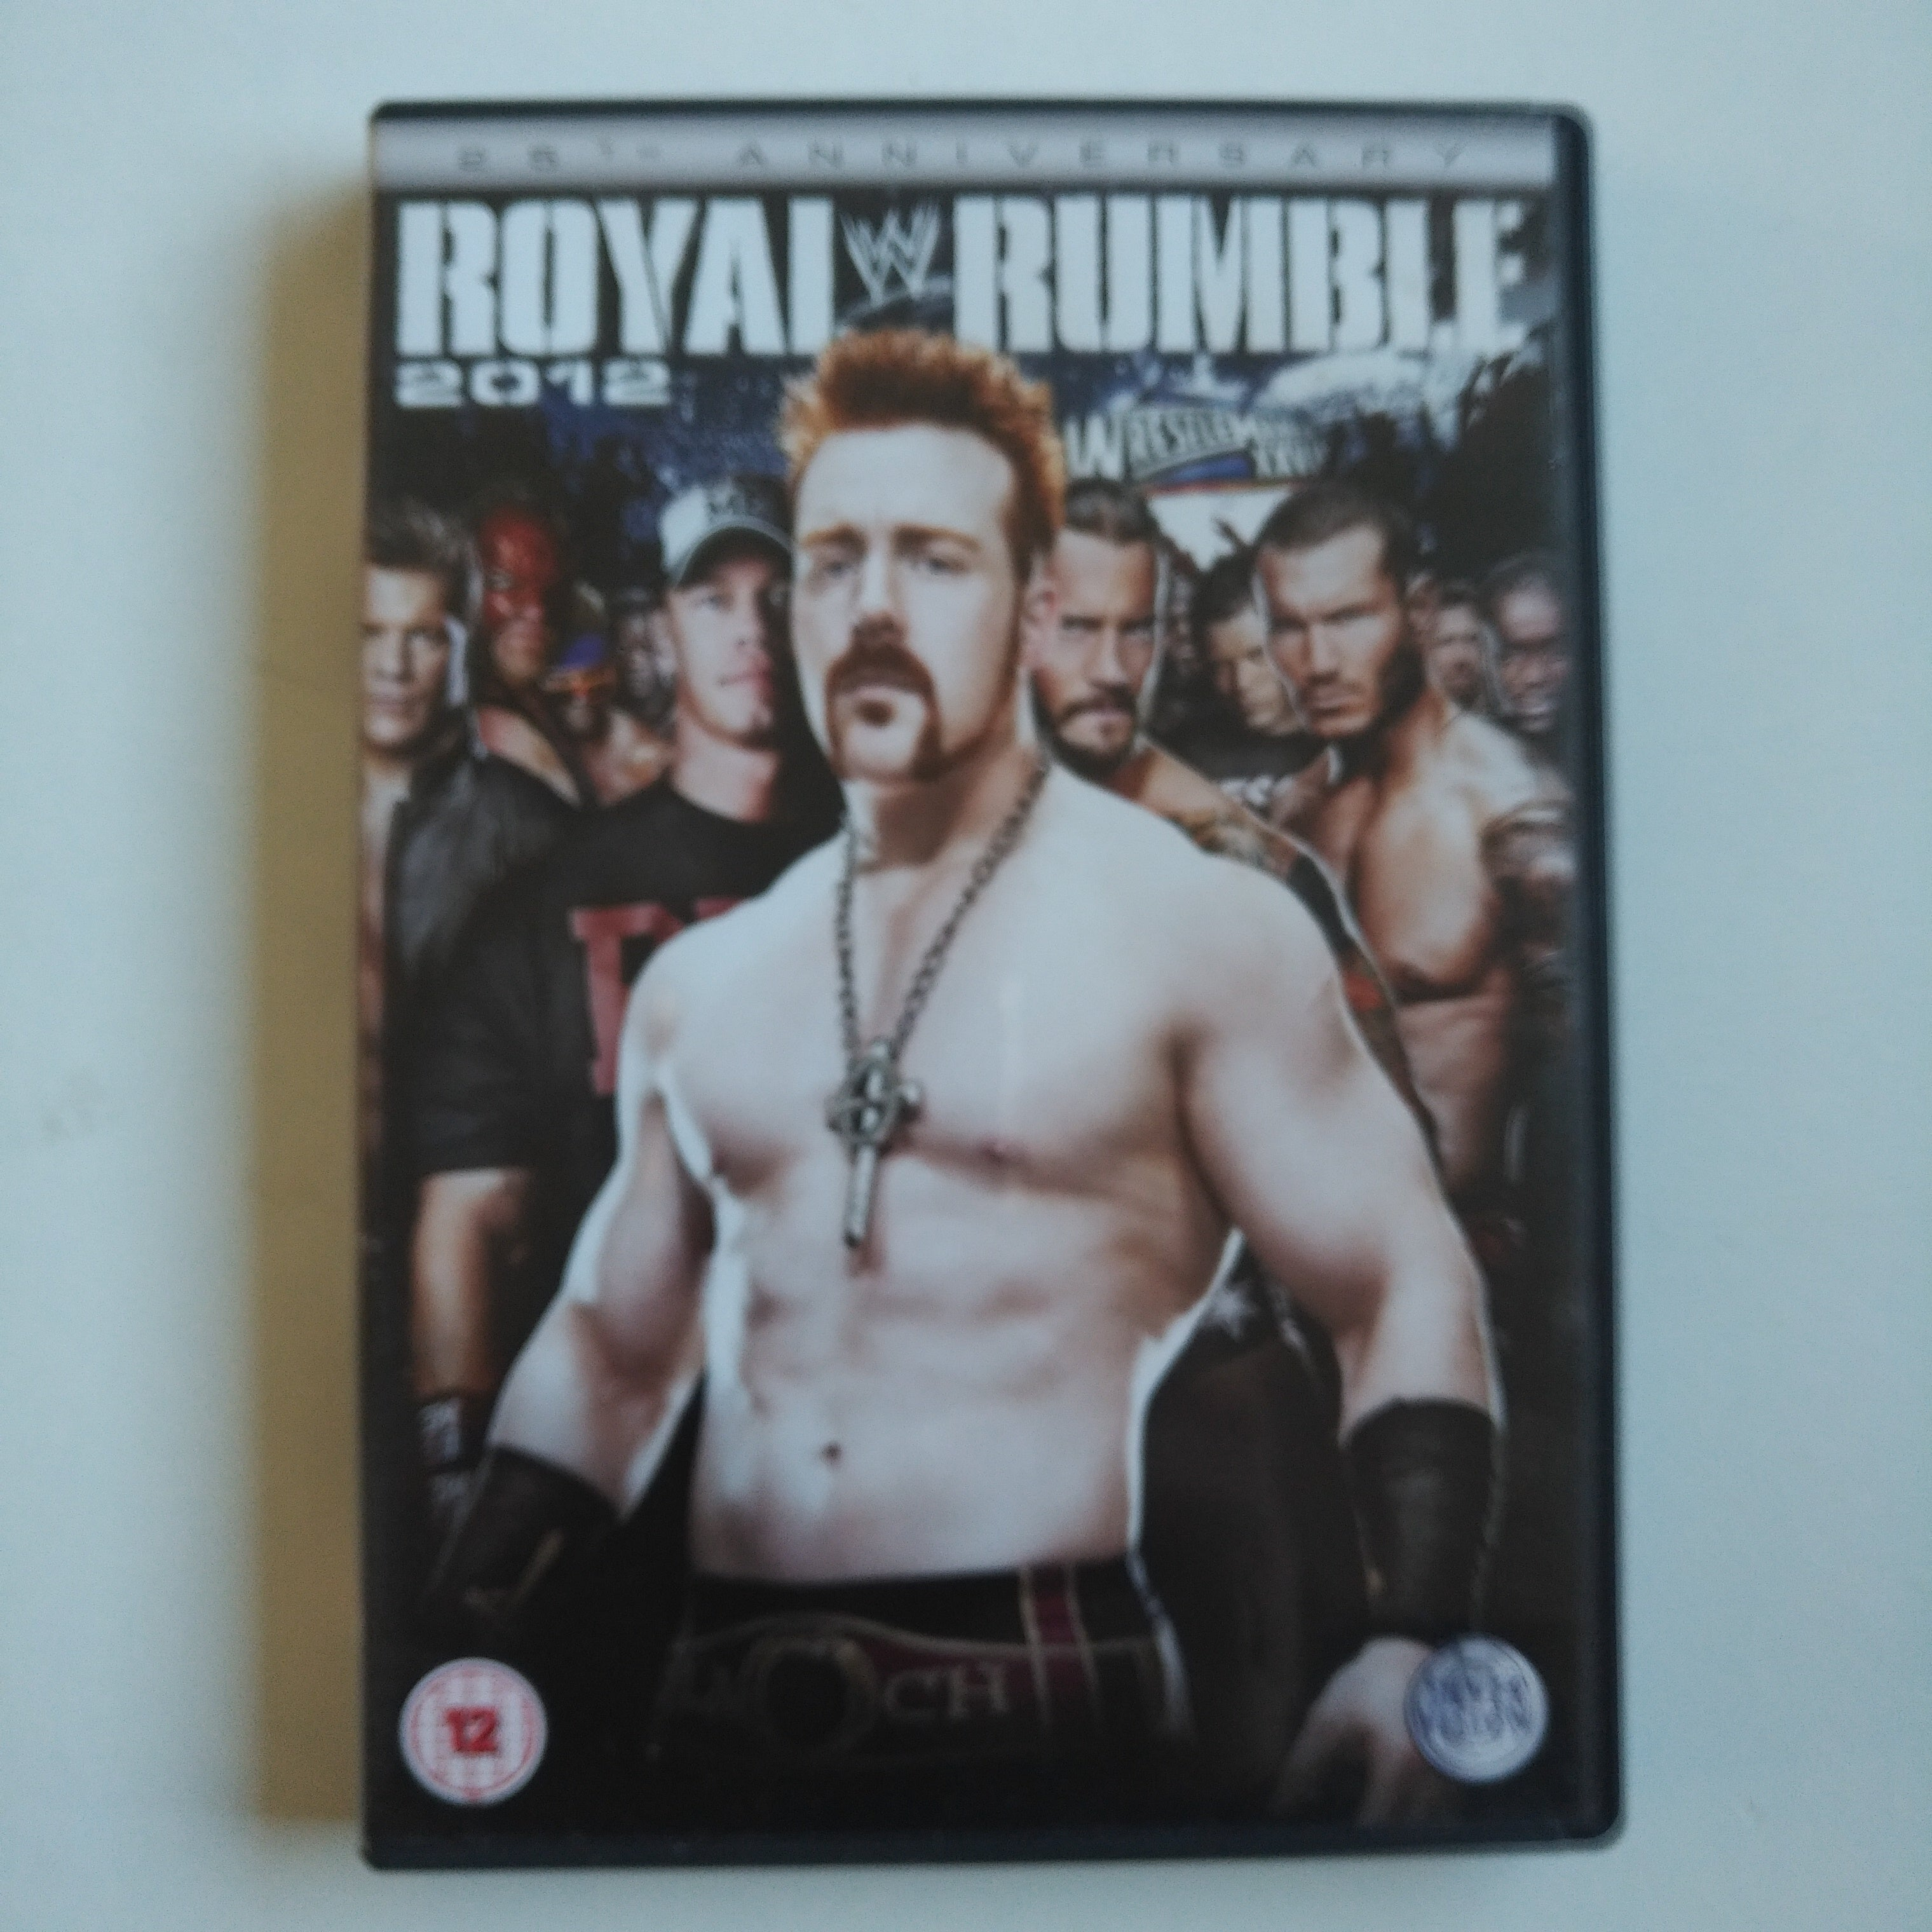 DVD Wrestling WWE Royal Rumble 2012 CM Punk Bryan Cena Big Show